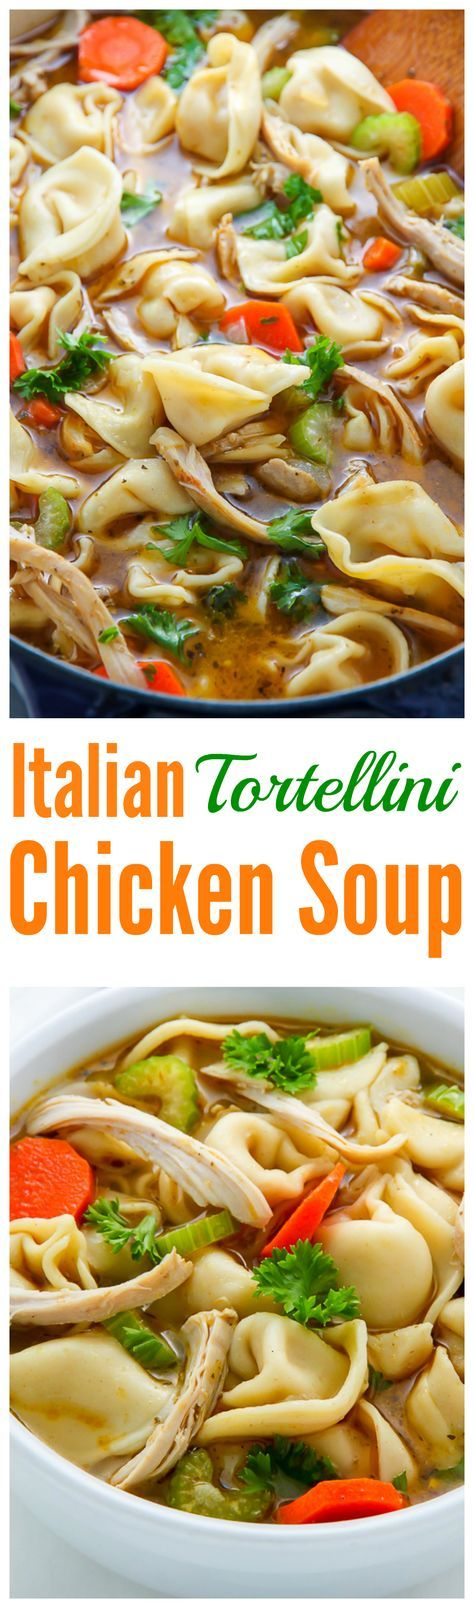 Nothing screams cozy like a giant bowl of Italian Chicken Tortellini Soup. Simple and comforting - this soup hits the spot every-single-time.